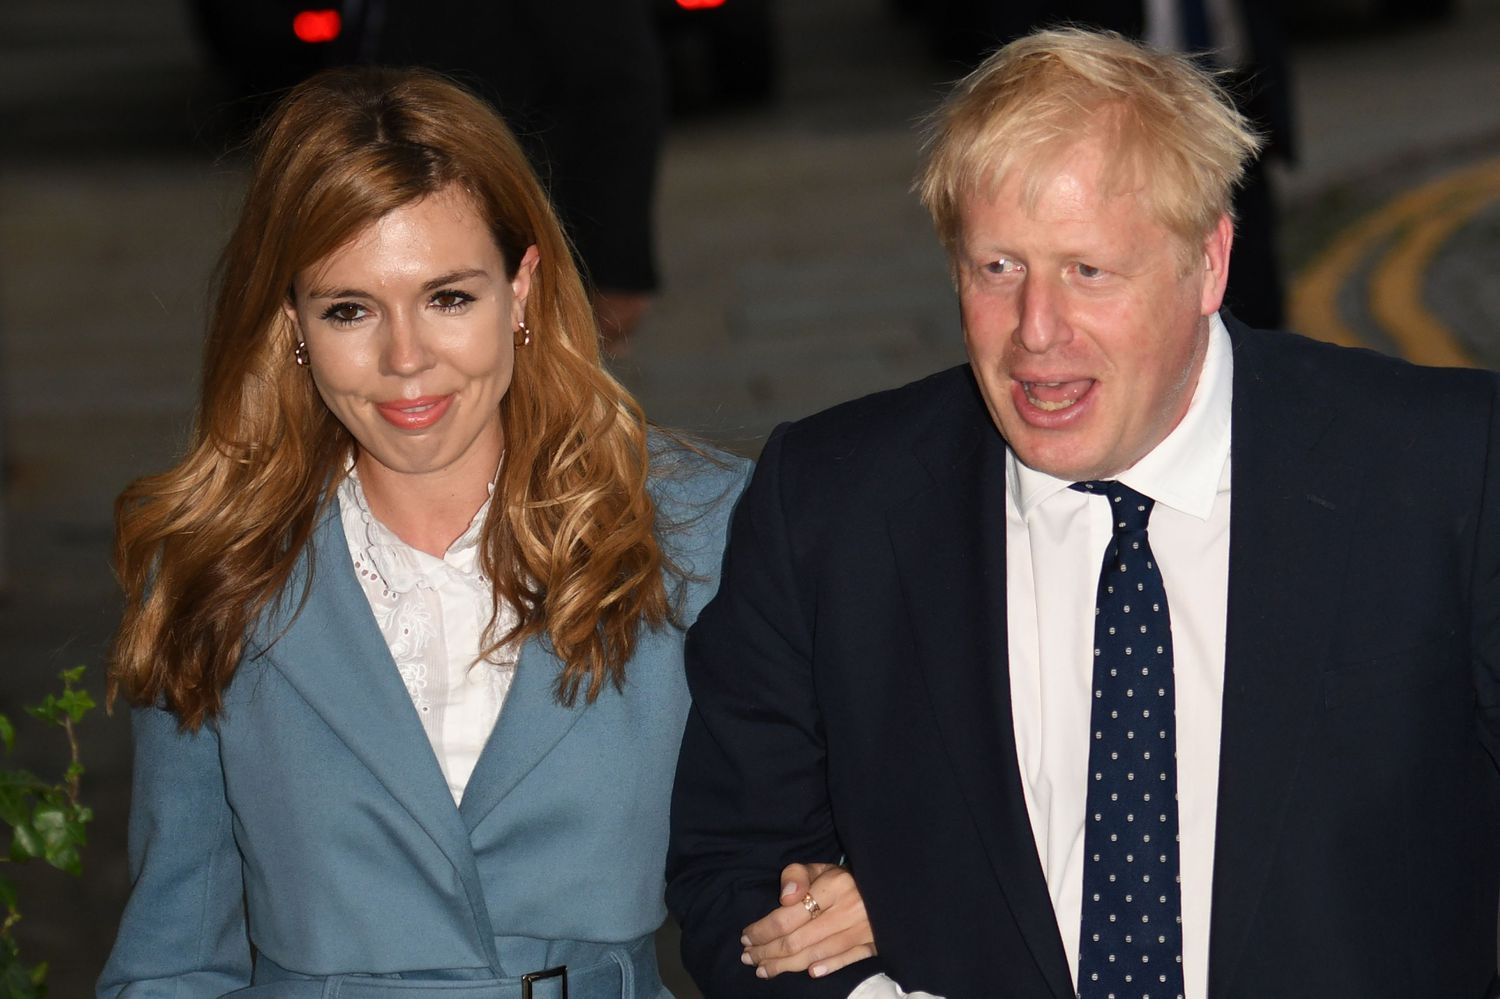 Boris Johnson et Carrie Symonds, en septembre 2019 à Manchester.